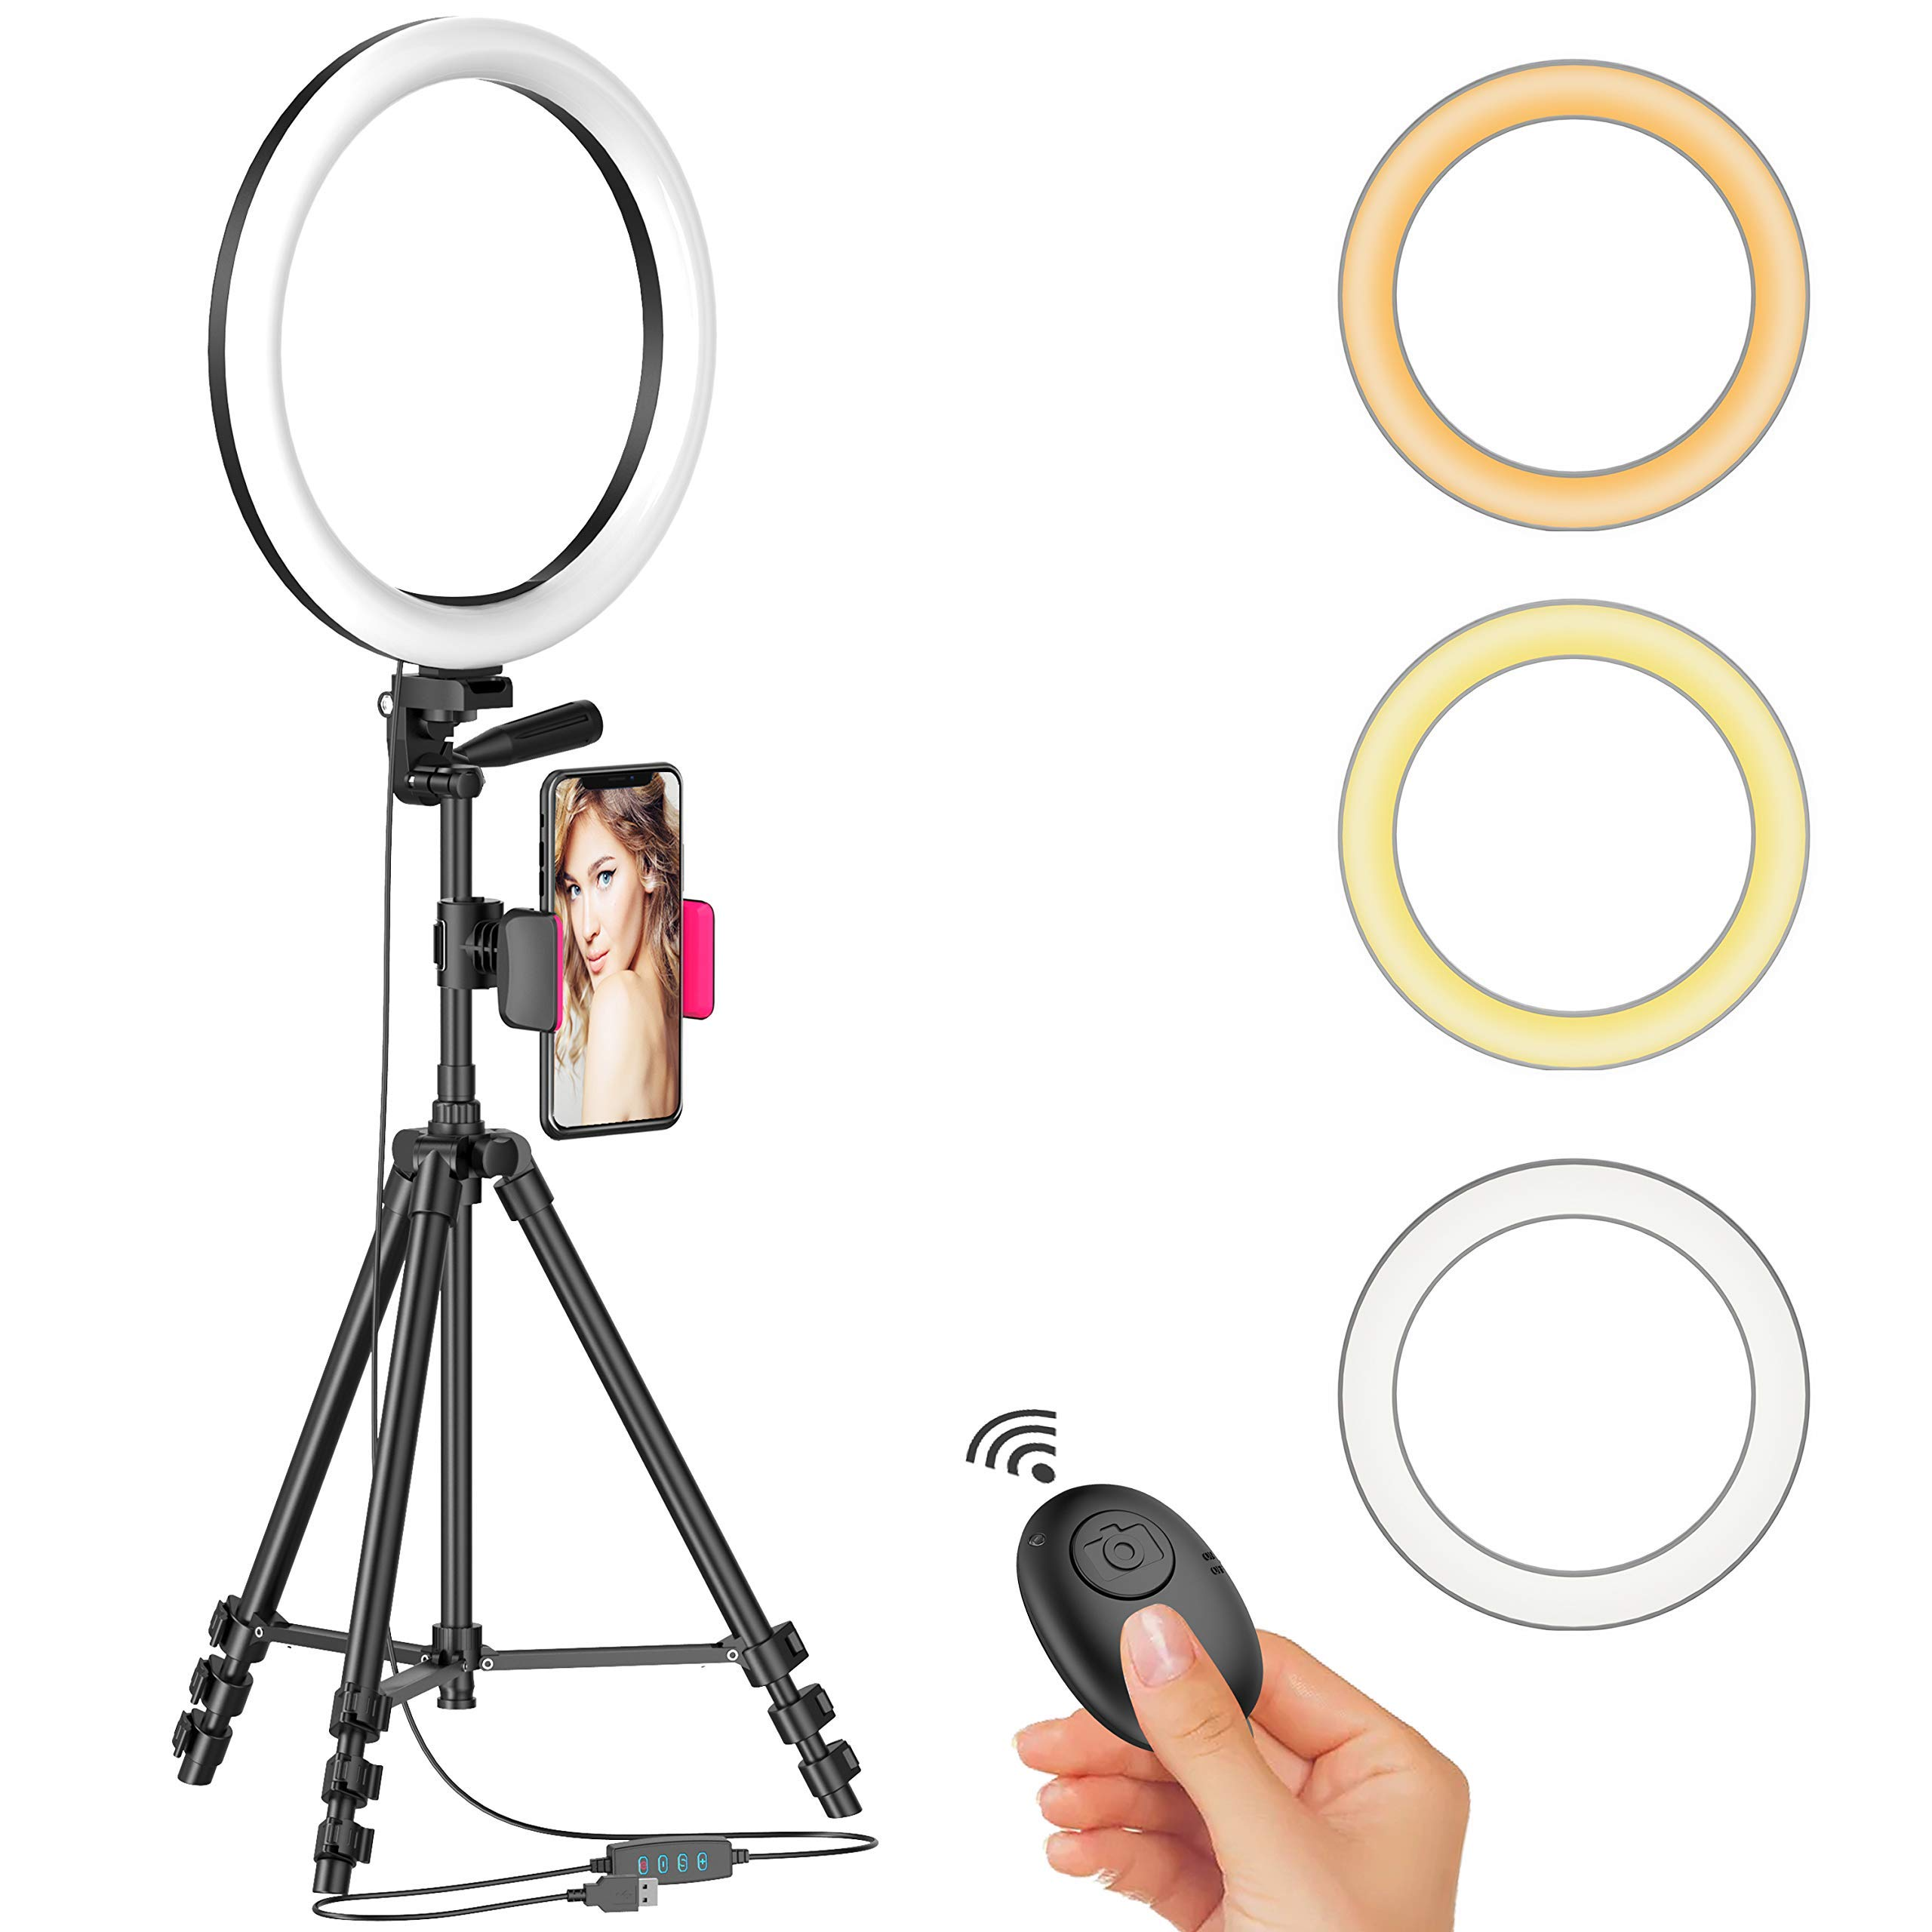 12 LED Selfie Ring Light with Tripod Stand & Cellphone Holder for Live Stream/Makeup/YouTube Video, Dimmable Beauty Ringlight for iPhone Android Phone, Color Temperature 3000K-6000K, 168Bulbs, Remote